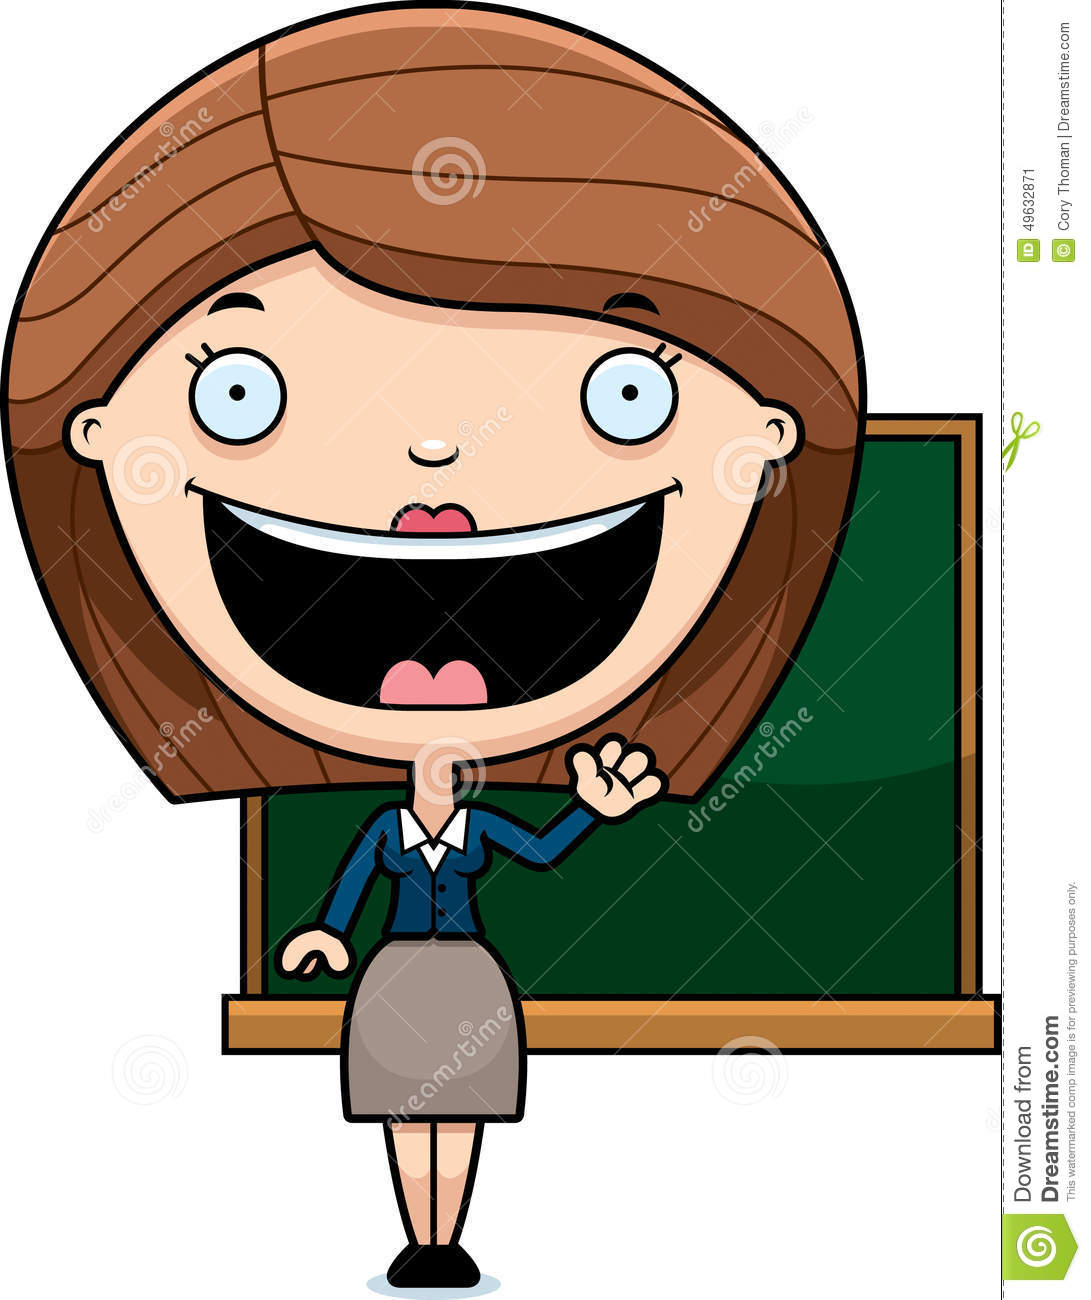 Teacher cartoon images